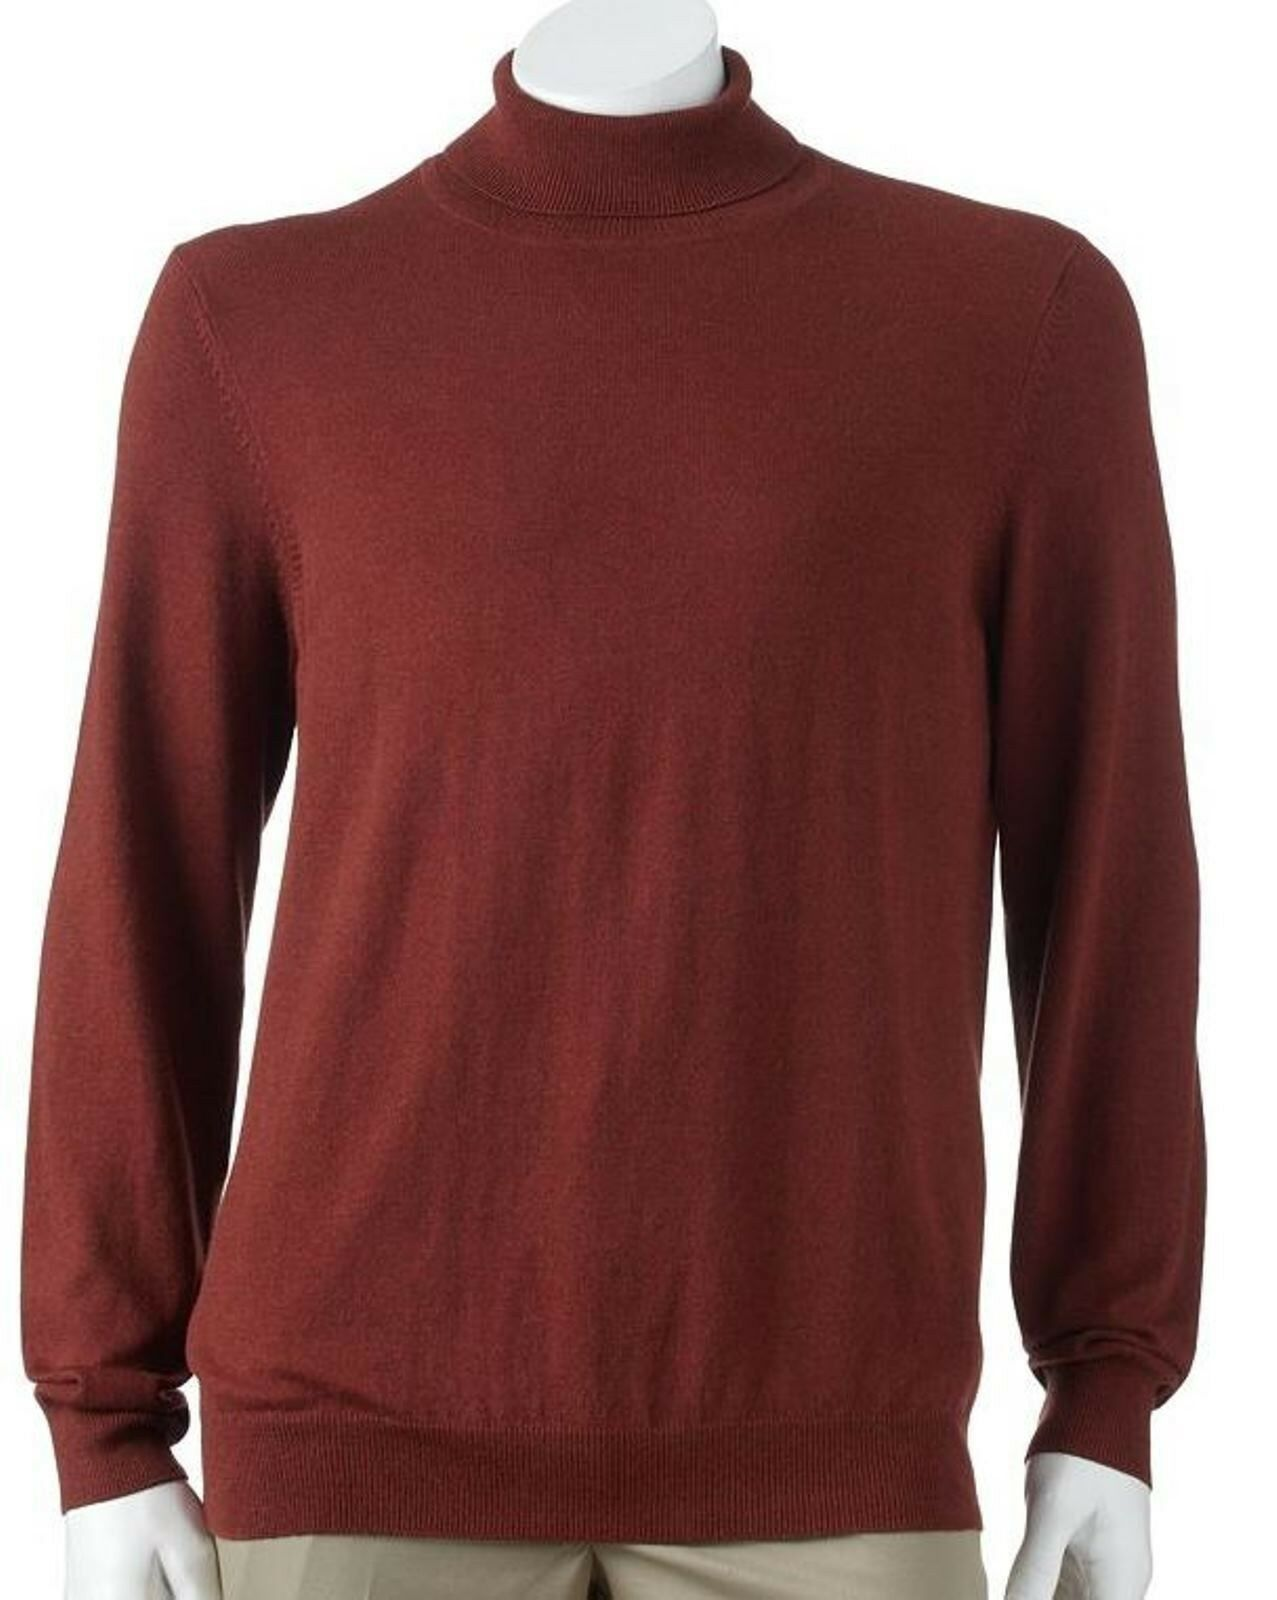 Croft & Barrow Mens Big & Tall 2xb Solid Lightweight Turtleneck ...